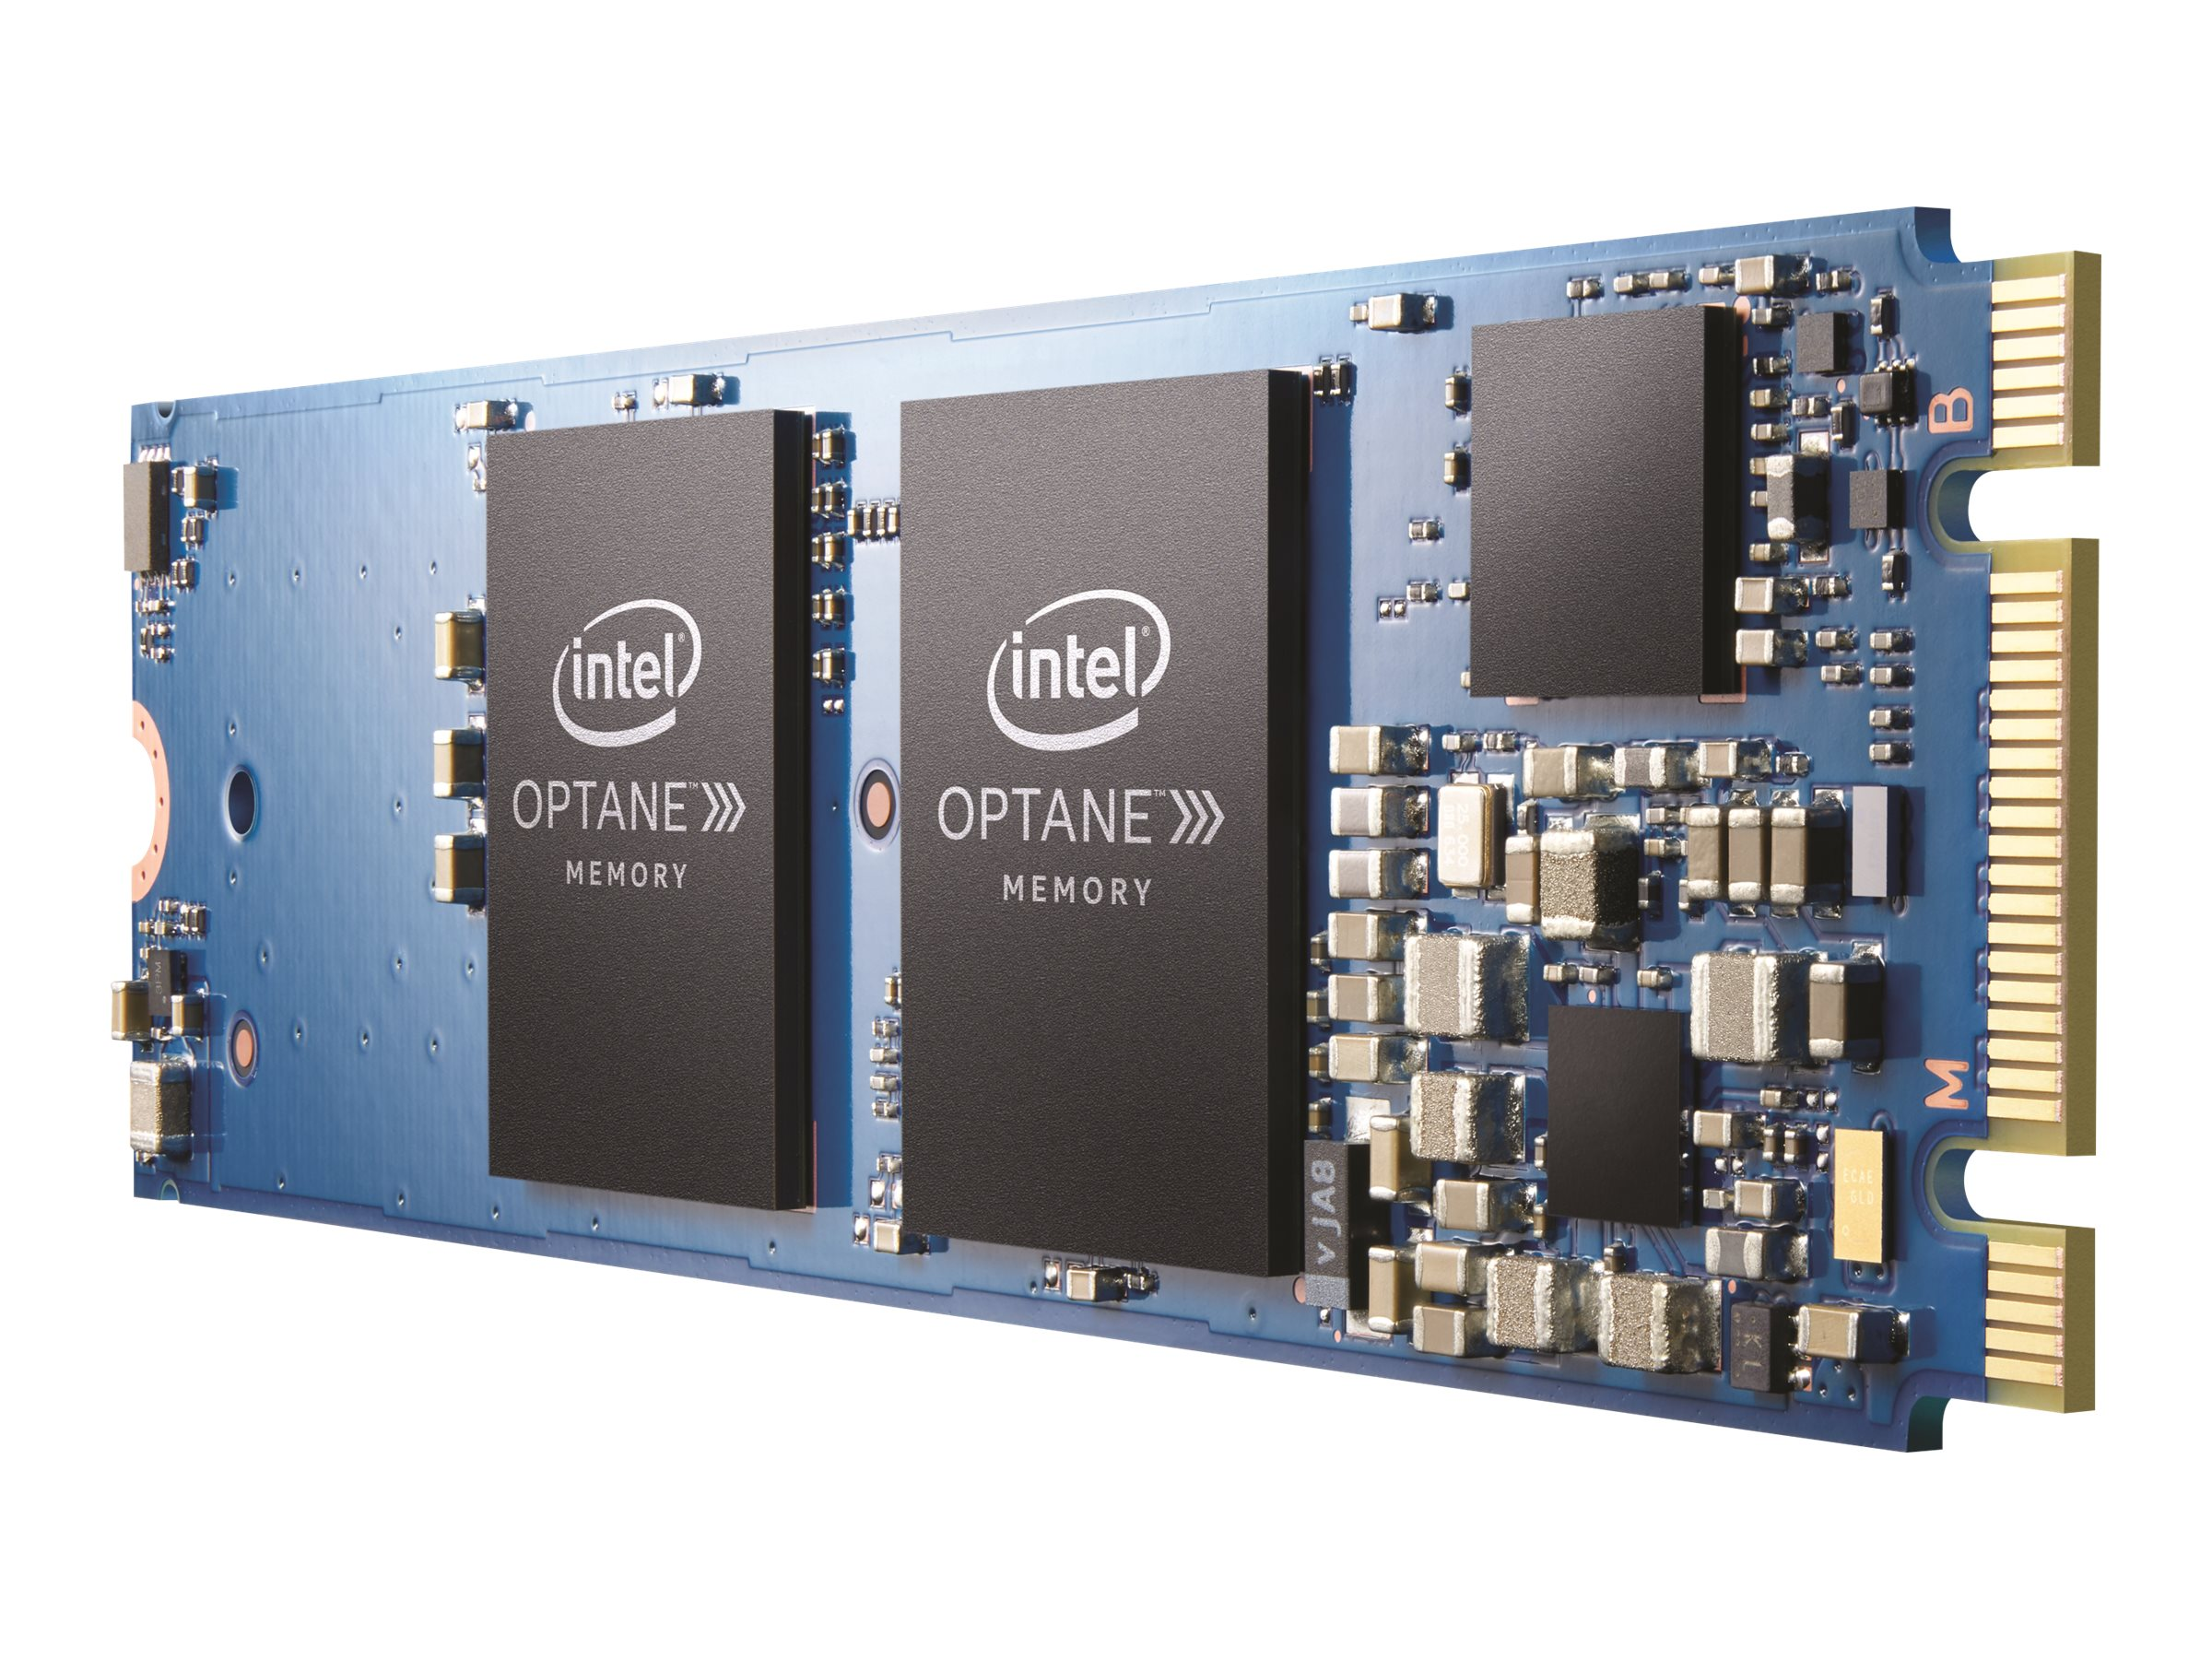 Intel Optane Memory Series - solid state drive - 32 GB - PCI Express 3.0 x2 (NVMe)